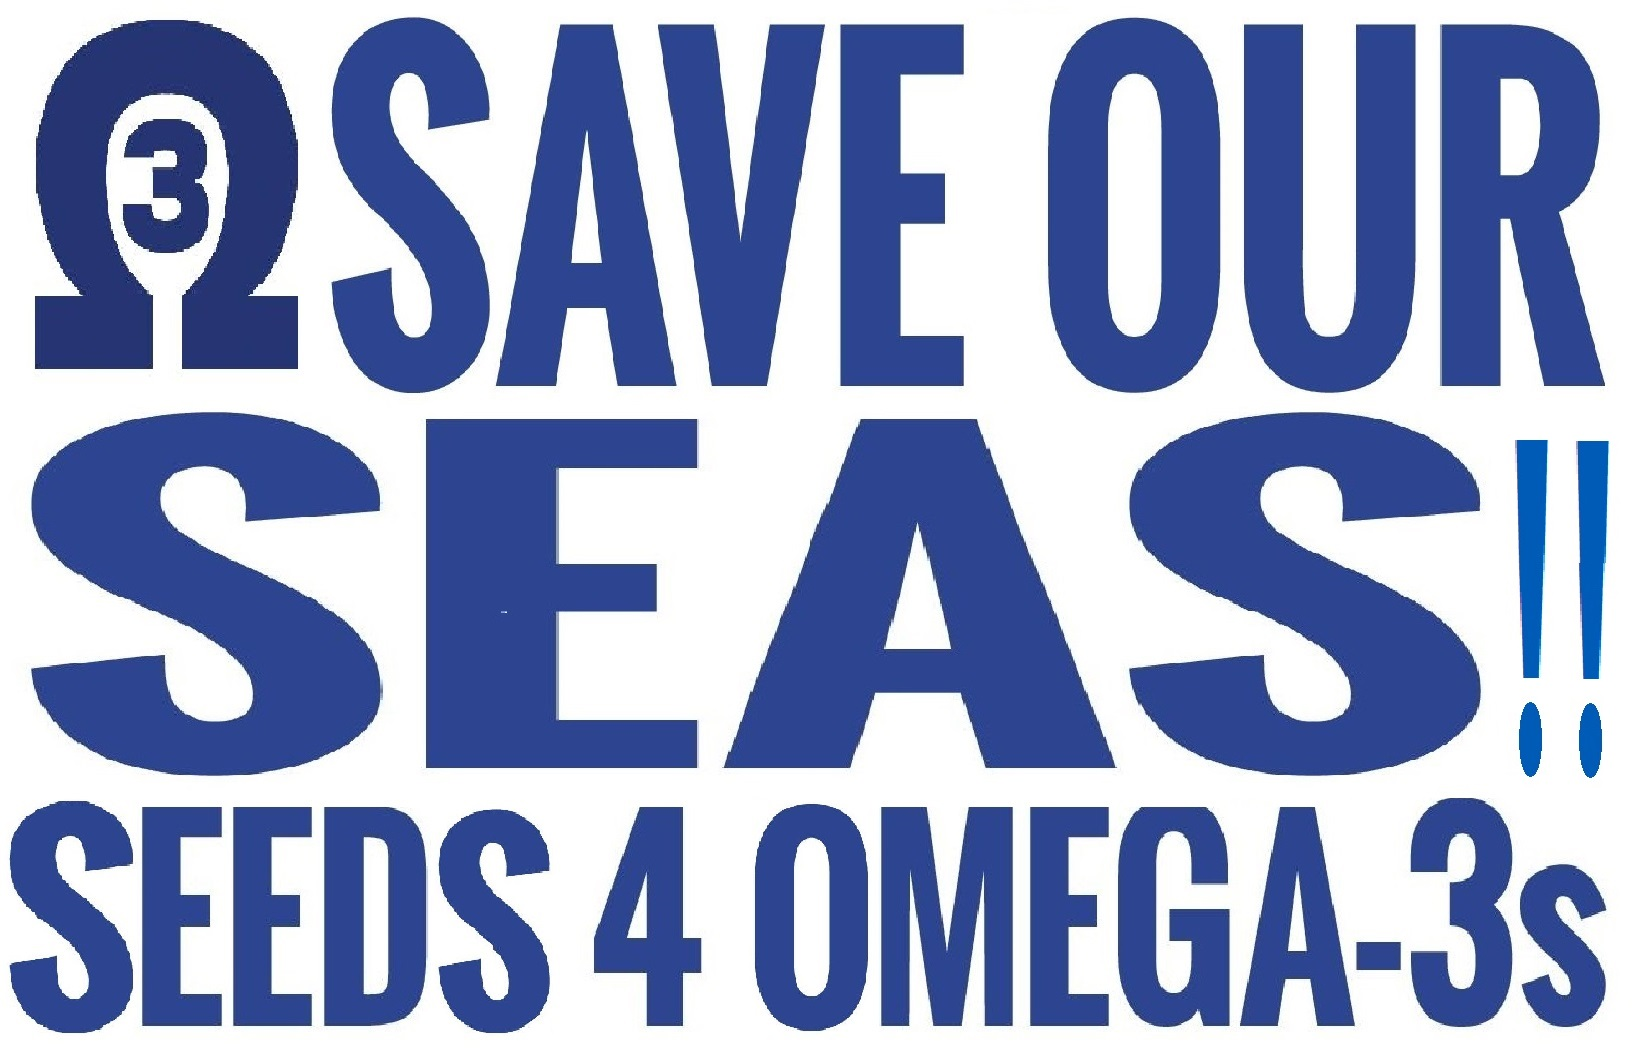 Save Our Seas Seeds 4 Omega3s